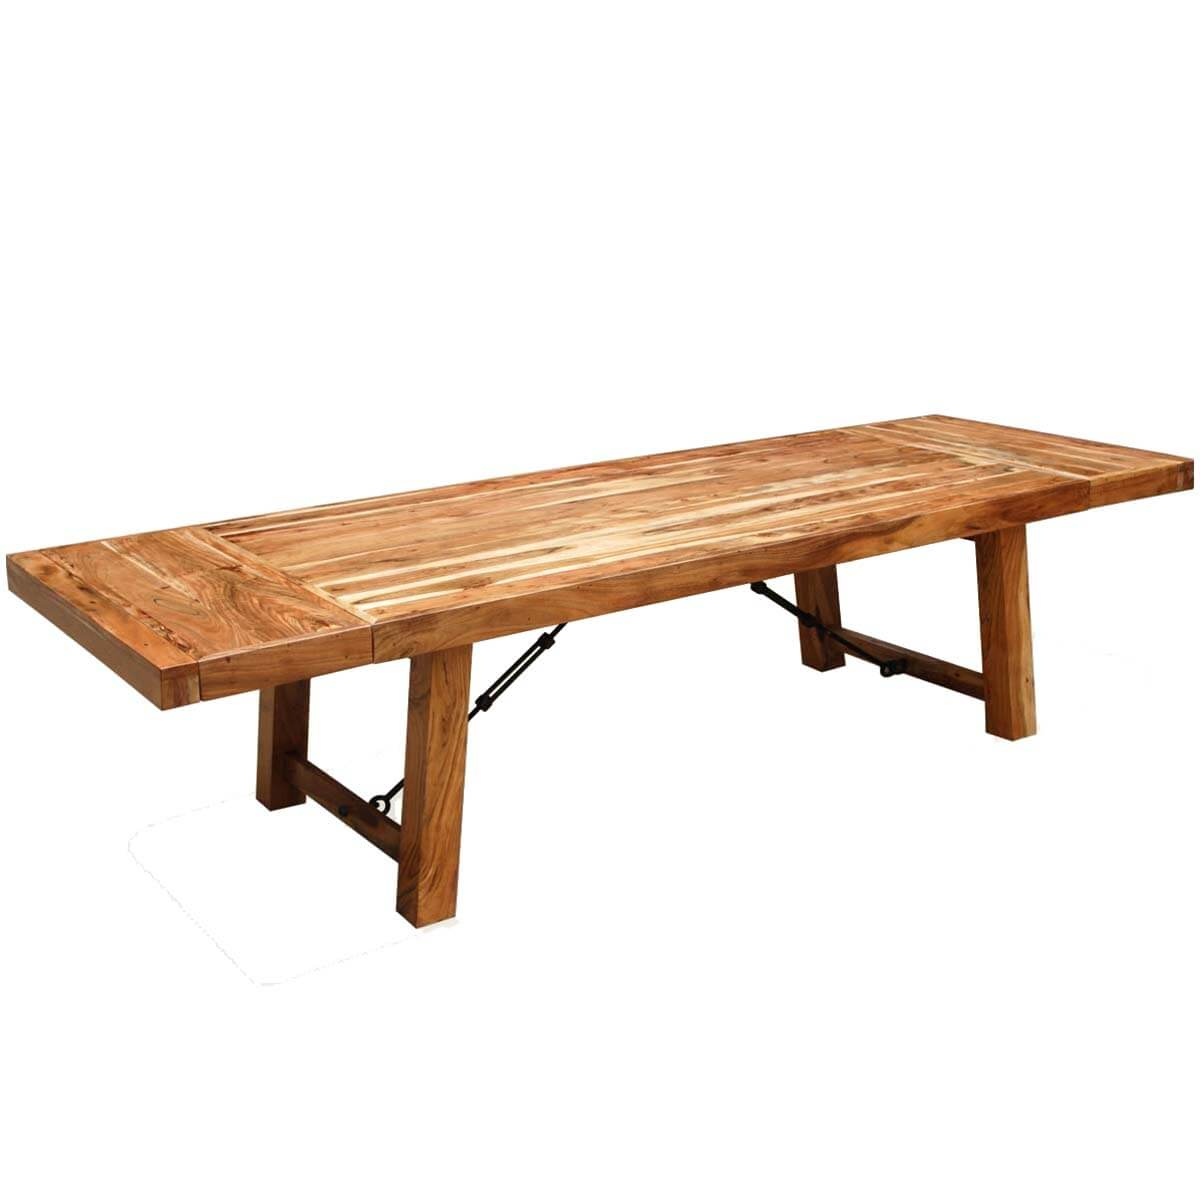 Rustic wood large santa fe dining room table w extensions for Biggest dining table